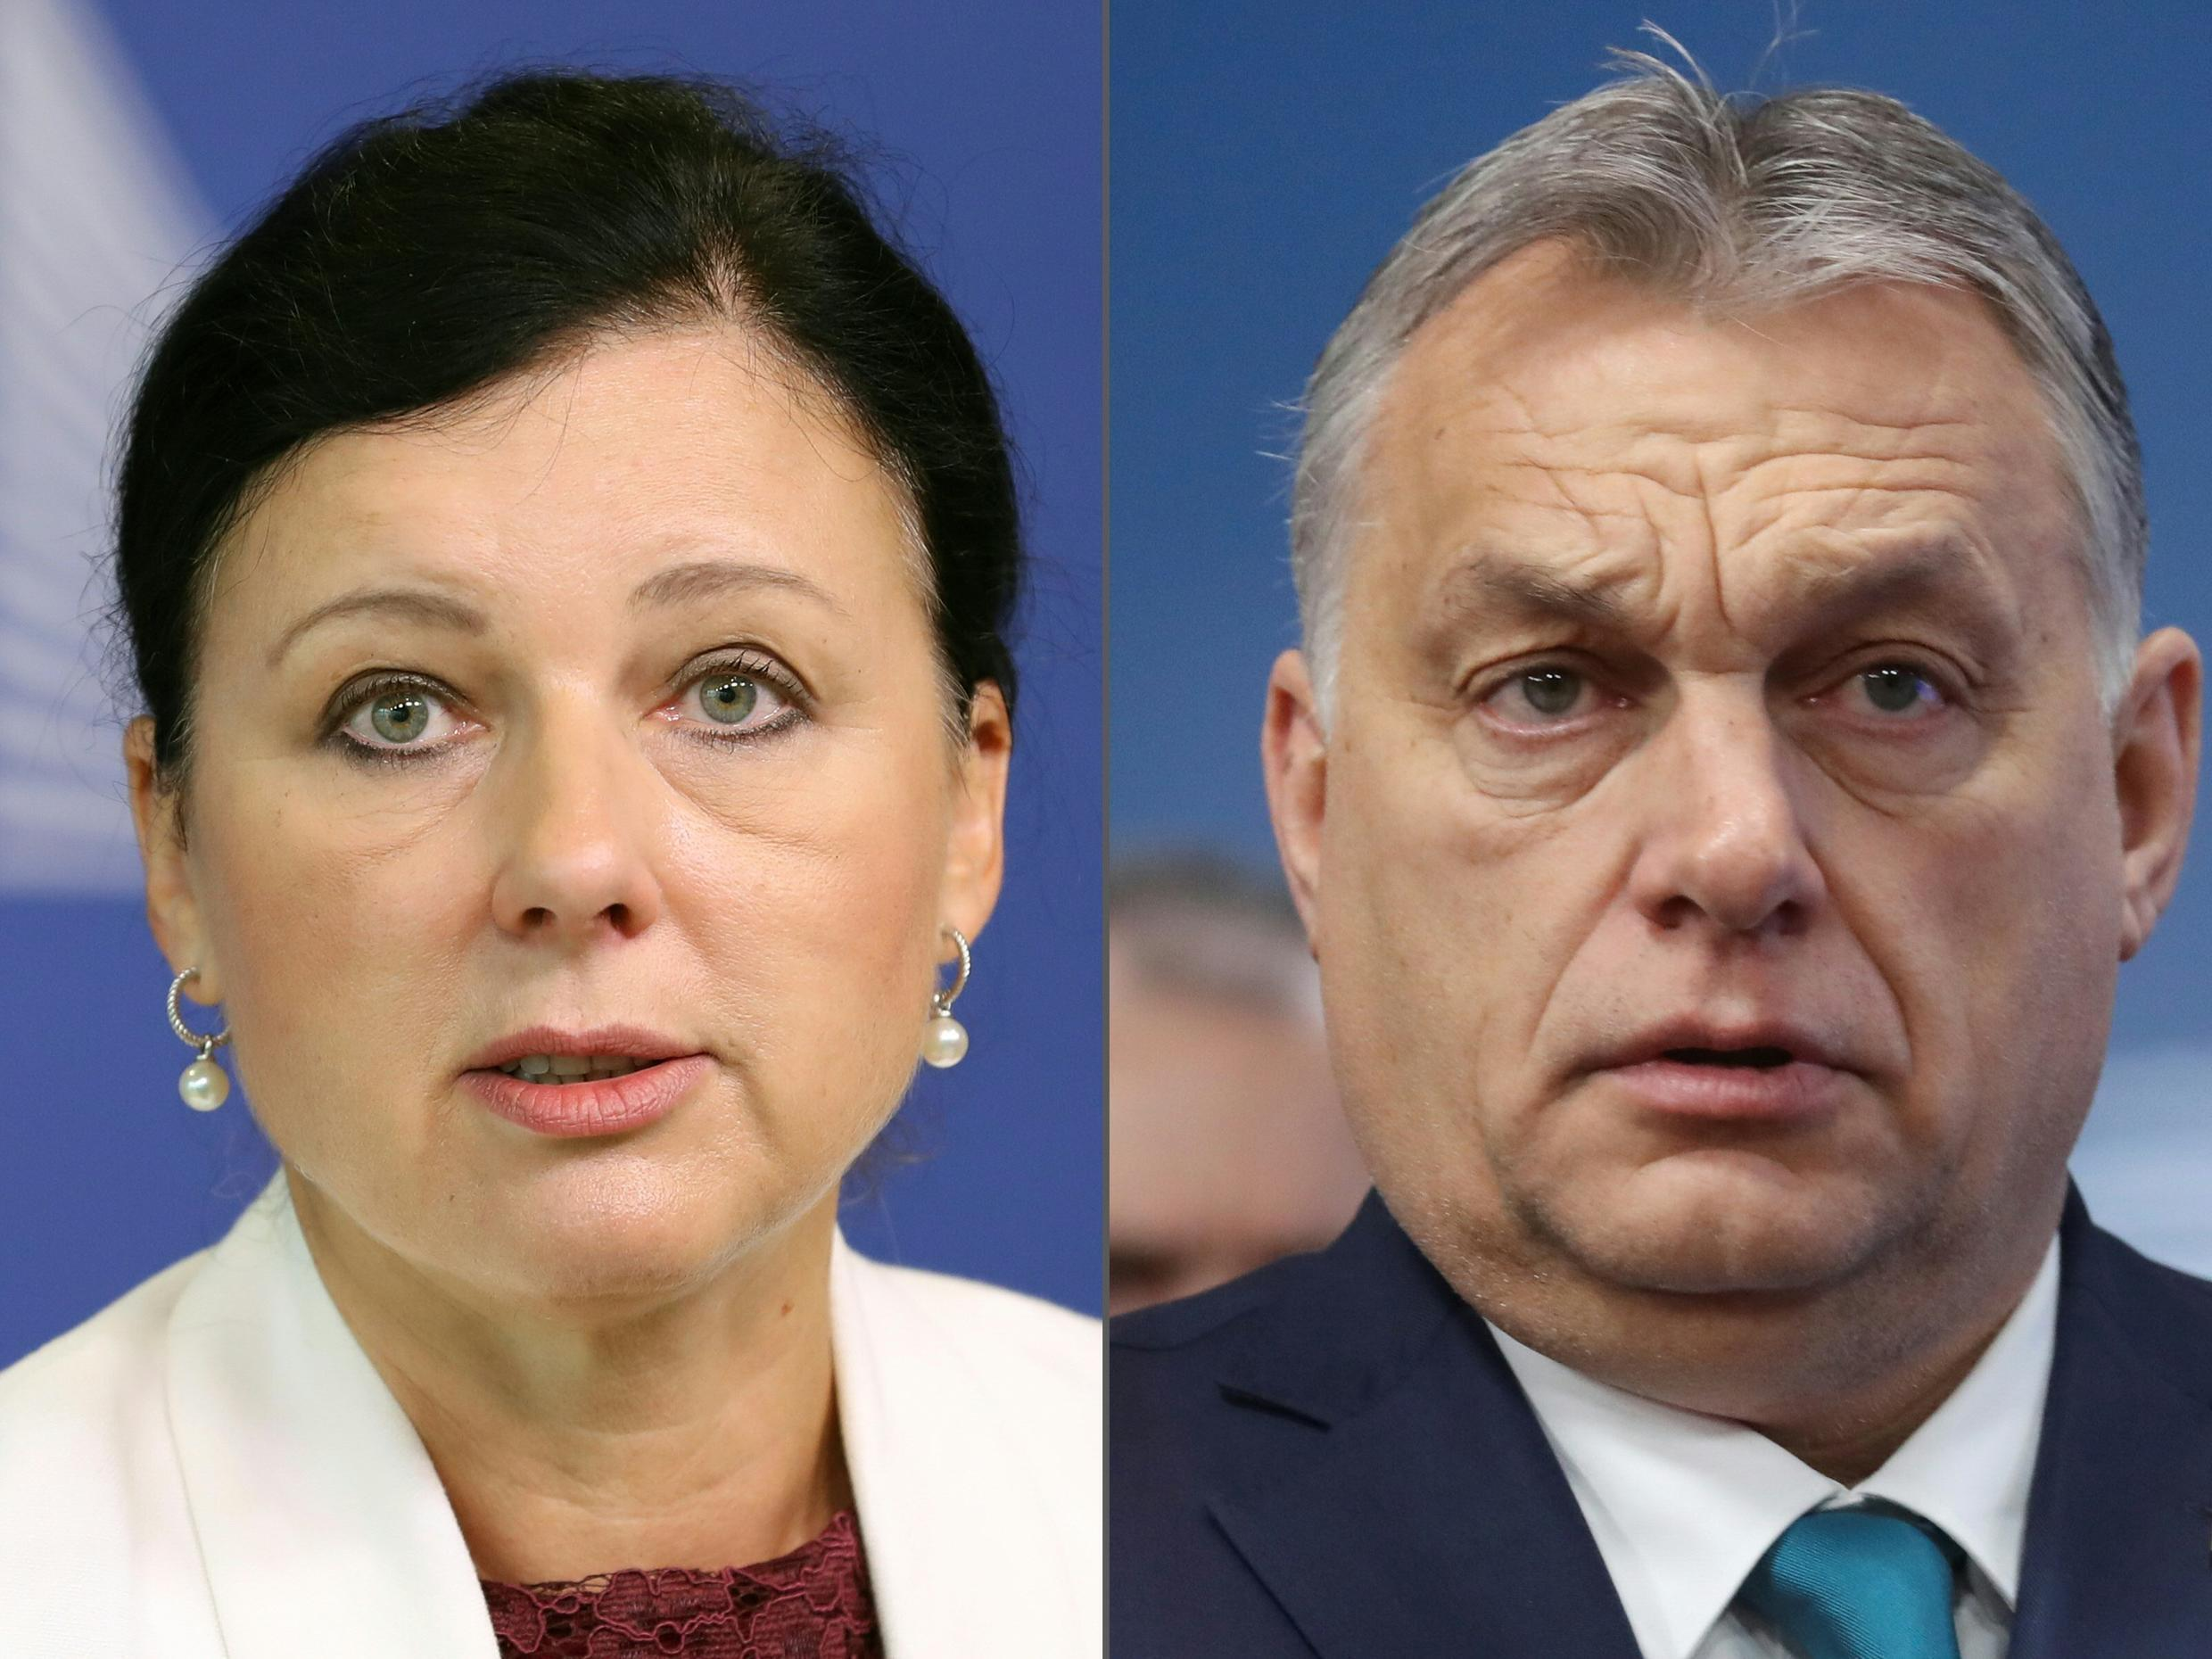 Jourova, a Czech, received support from Commission President Ursula von der Leyen after Hungary's Prime Minister Viktor Orban slammed criticism and cut off political contact with her